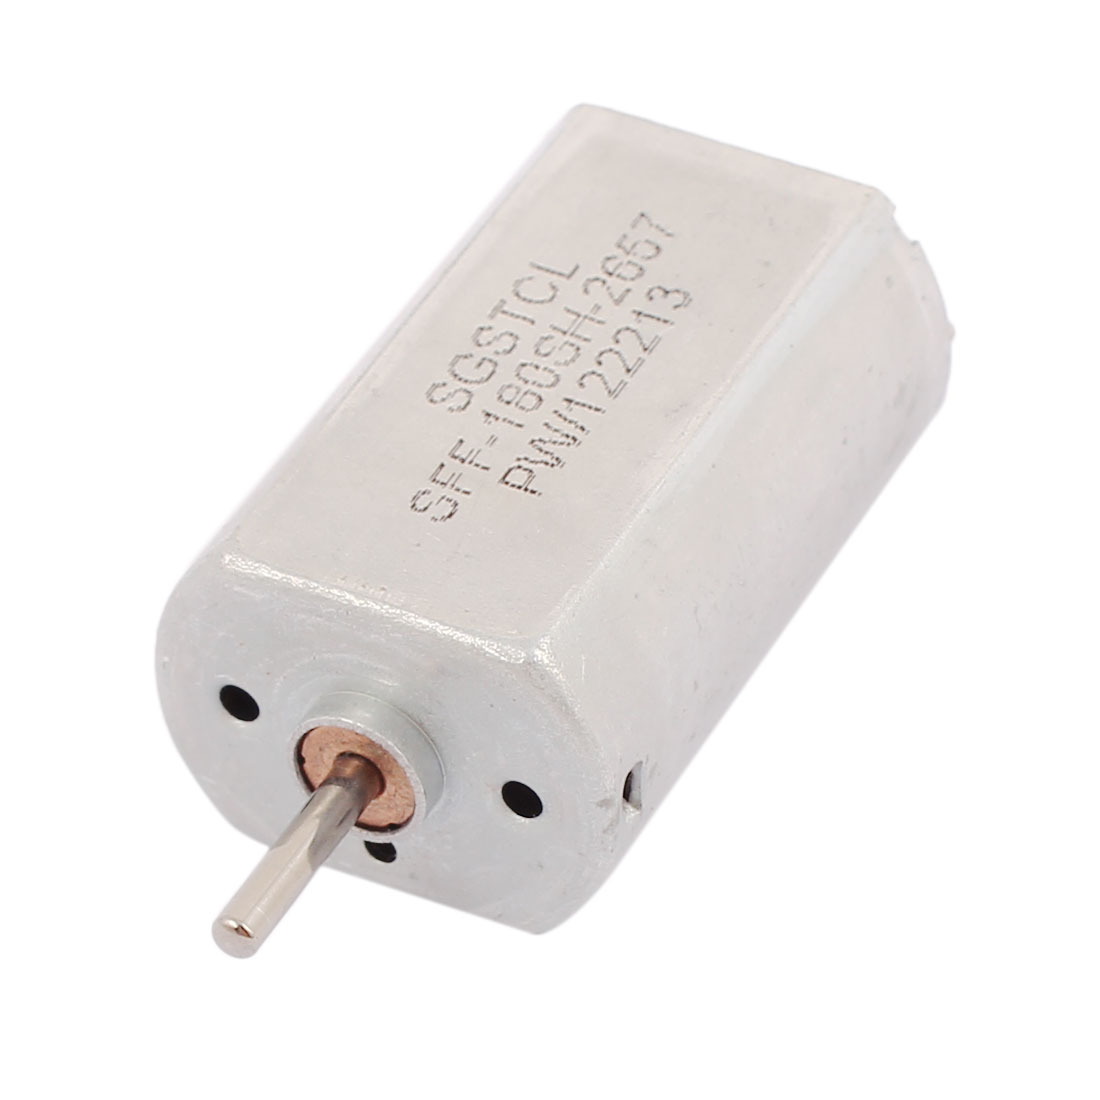 DC 3-6V 25000RPM Large Torque Strong Magnet Micro DC Vibration Motor for Electric Toy